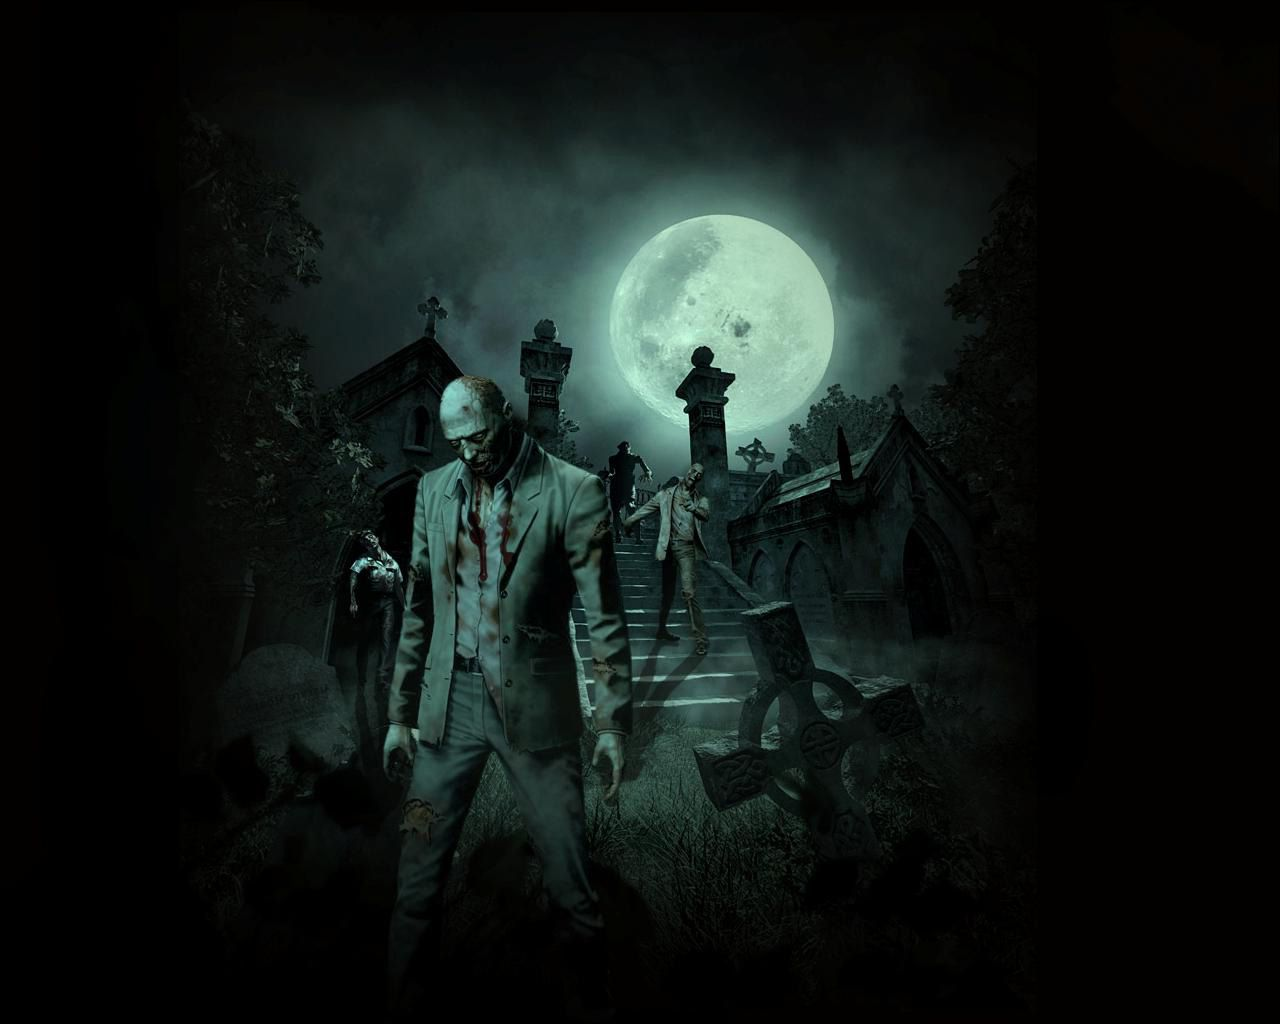 Scary Zombie Wallpapers - Top Free ...